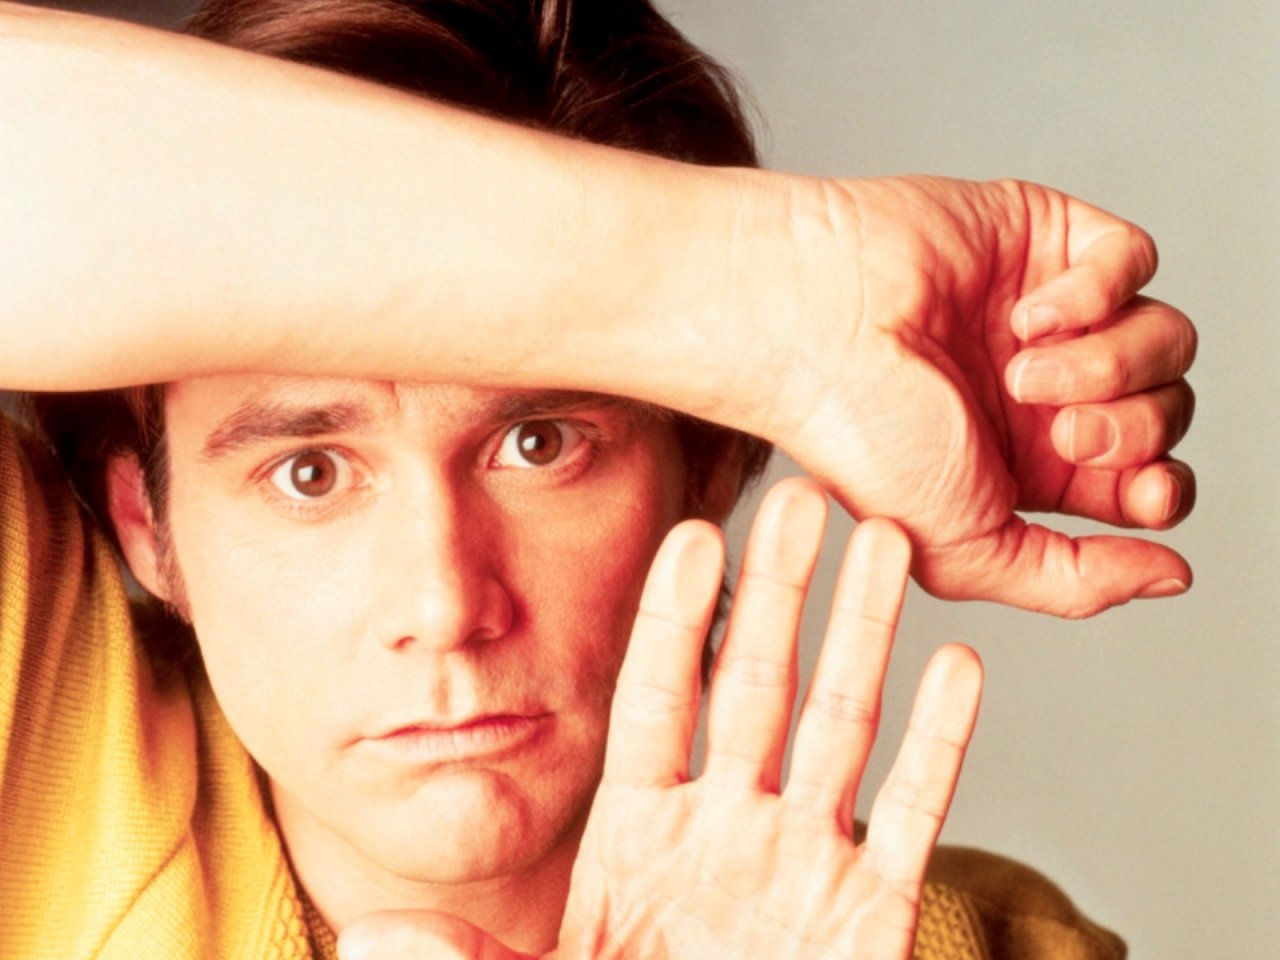 Thousands Sign Petition To Deport Canadian Jim Carrey After Asinine Gun Comments | MrConservative.com | Mr. Conservative is the top website for news, ...